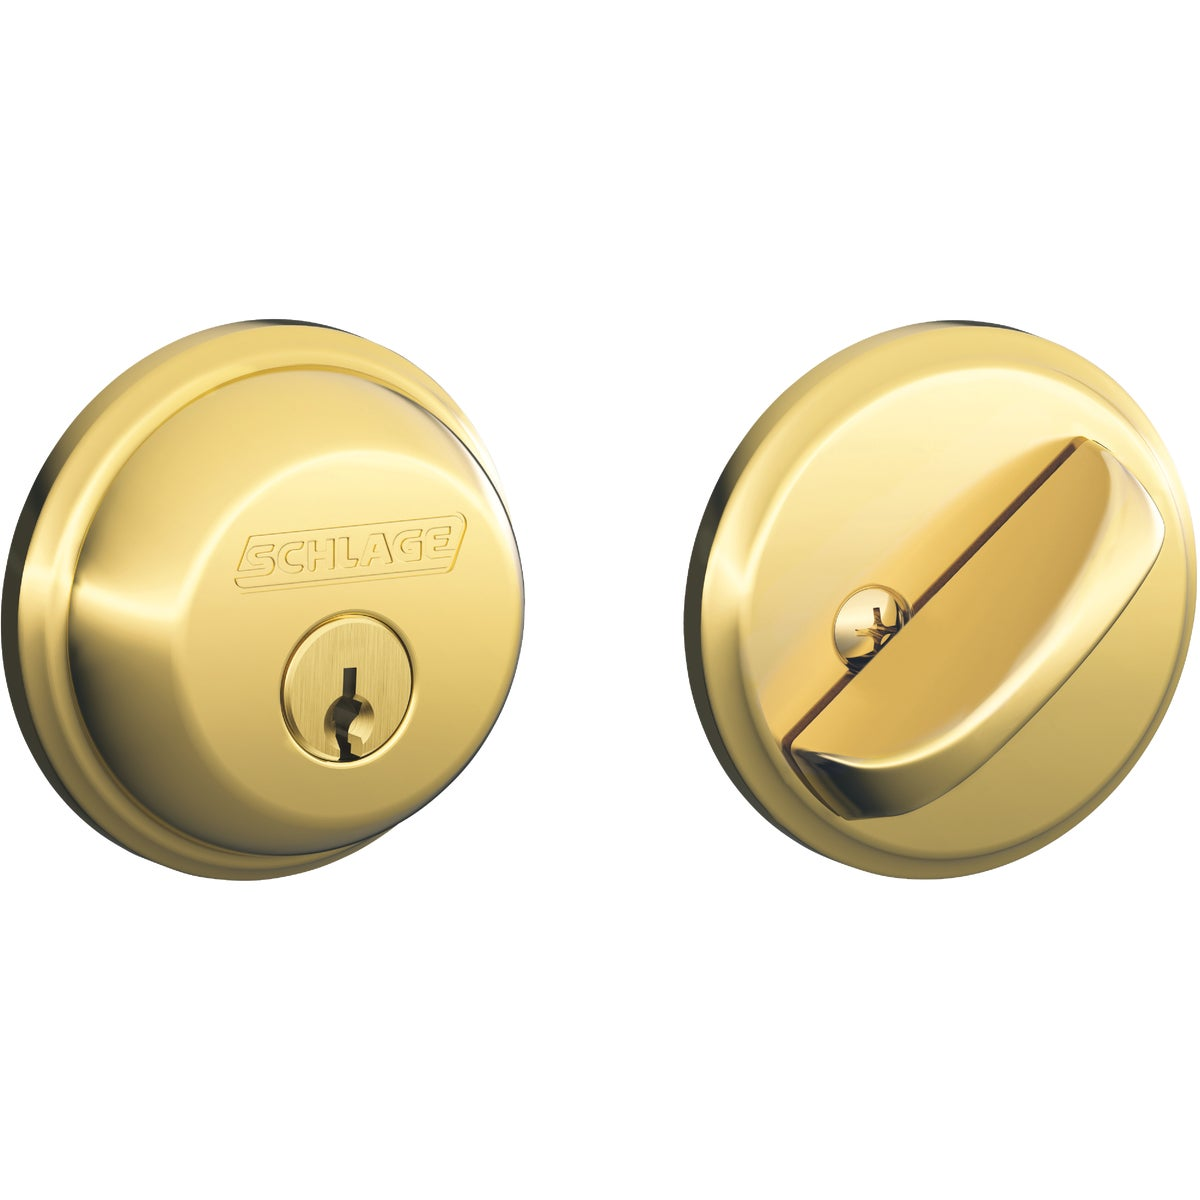 Item 254630, Box pack. Deadbolt thrown or retracted by key from outside or by inside turn piece. Bolt automatically deadlocks when fully thrown. Solid 1-piece design.